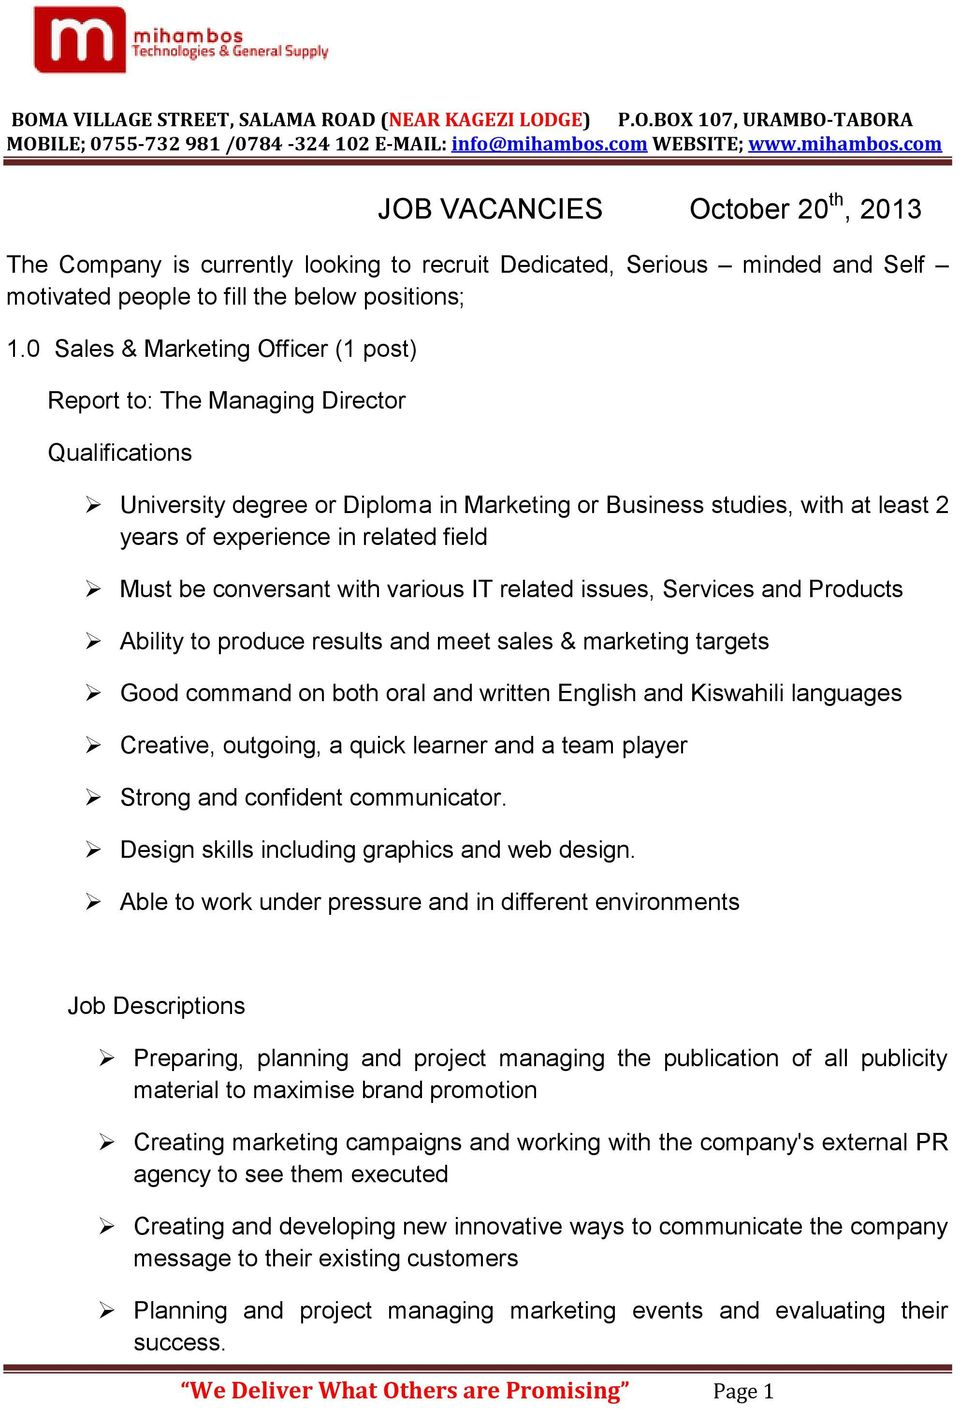 issues, Services and Products Ability to produce results and meet sales & marketing targets Good command on both oral and written English and Kiswahili languages Creative, outgoing, a quick learner